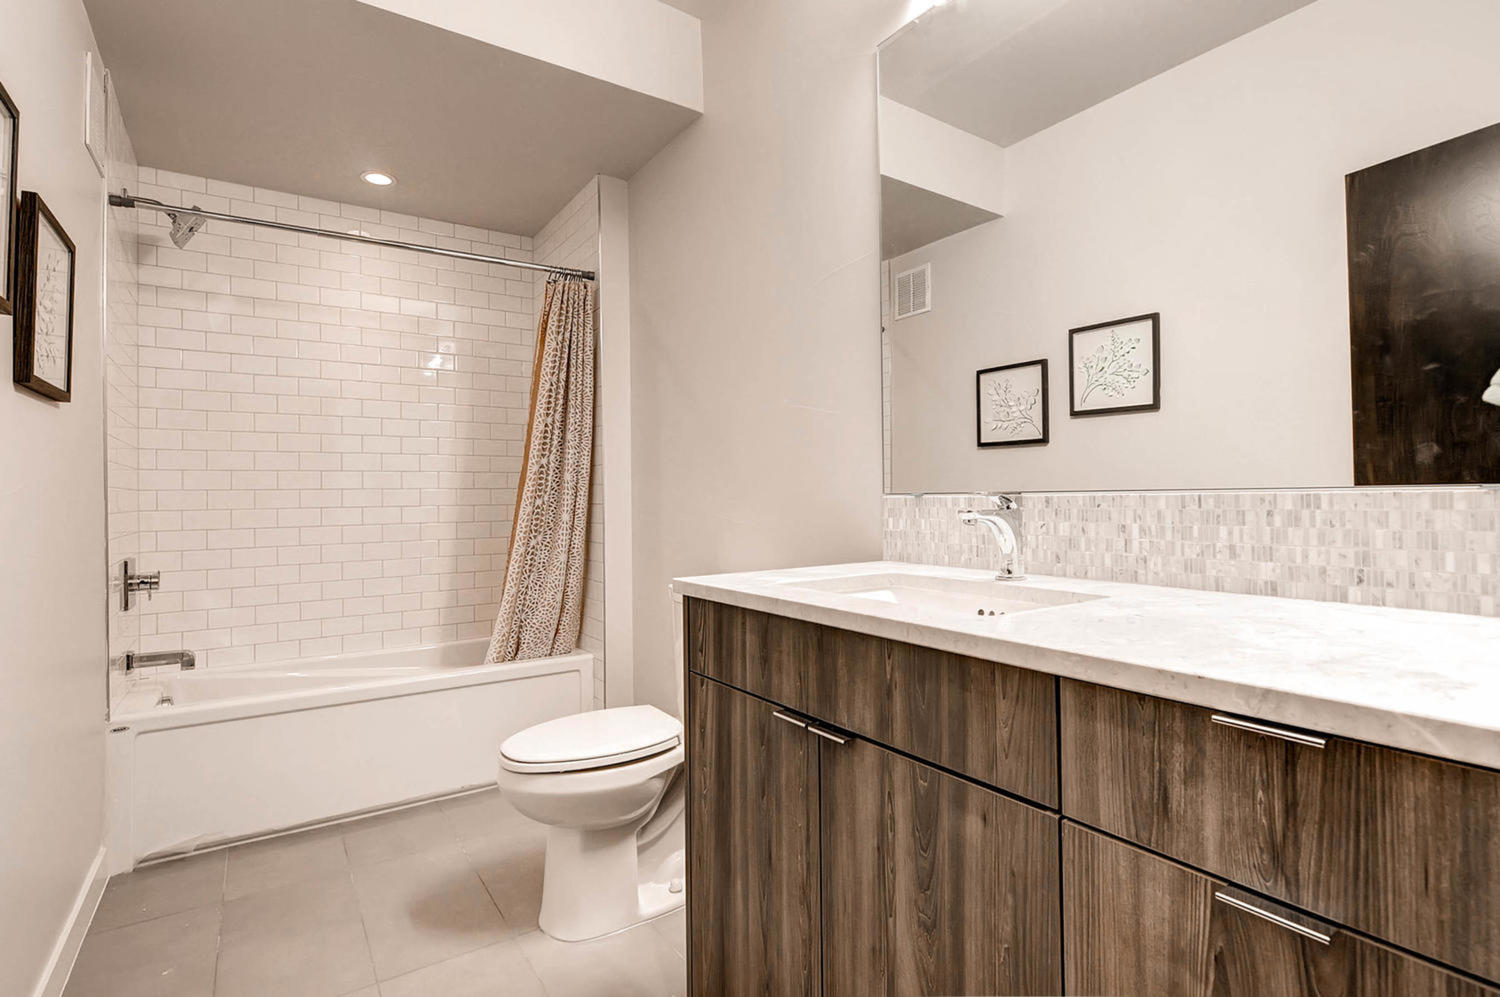 3120 w 27th ave denver co large 025 9 lower level bathroom 1500x998 72dpi